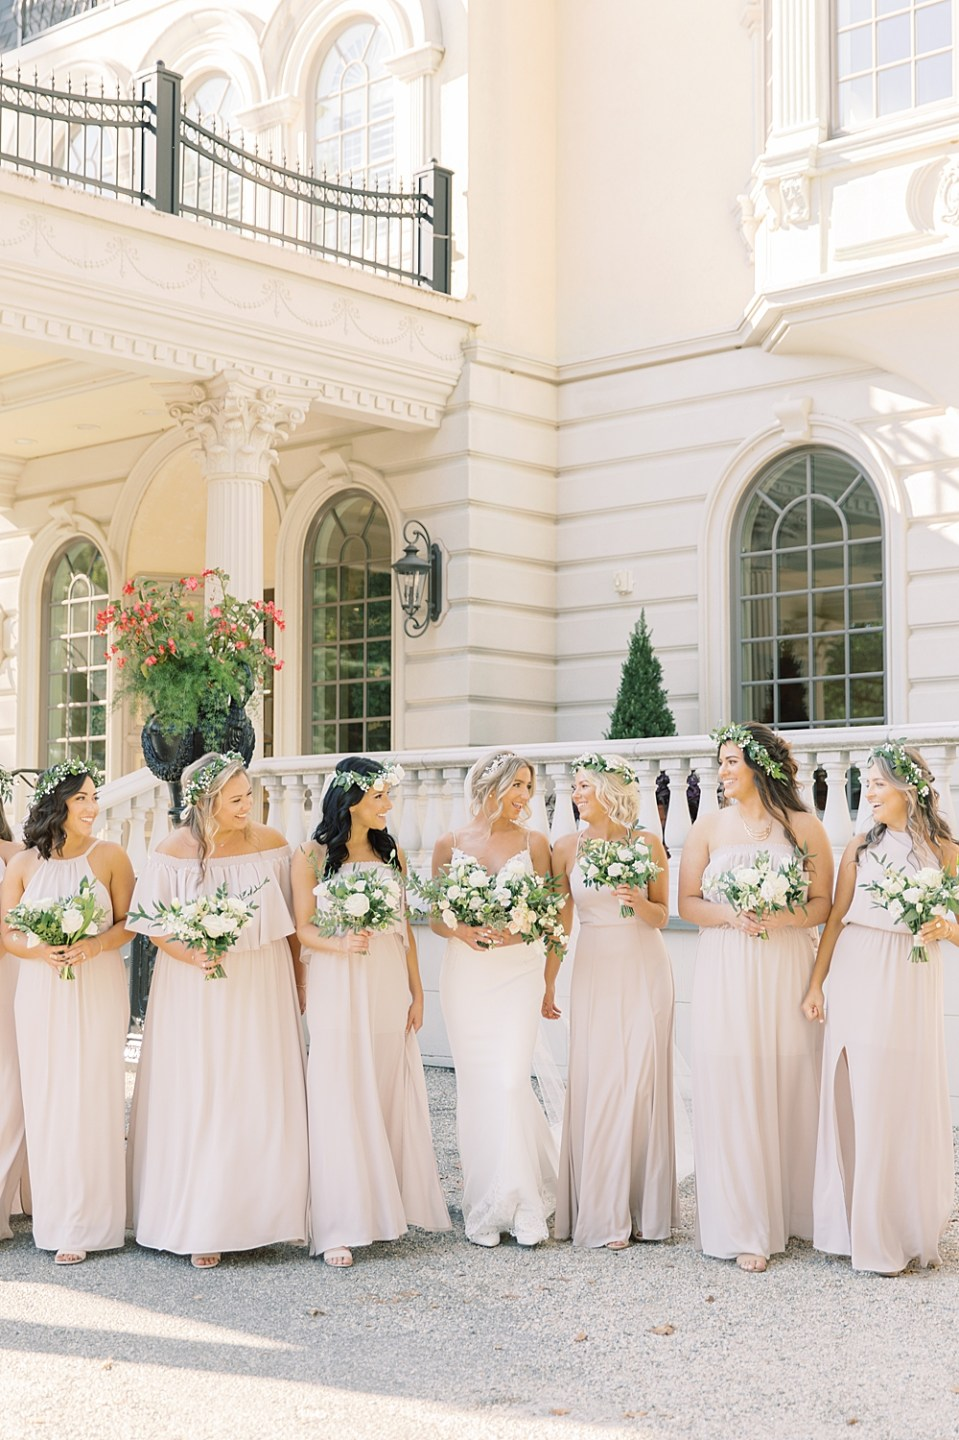 Ashford Estate Wedding Photography | Bride with Bridesmaids | Sarah Canning Photography